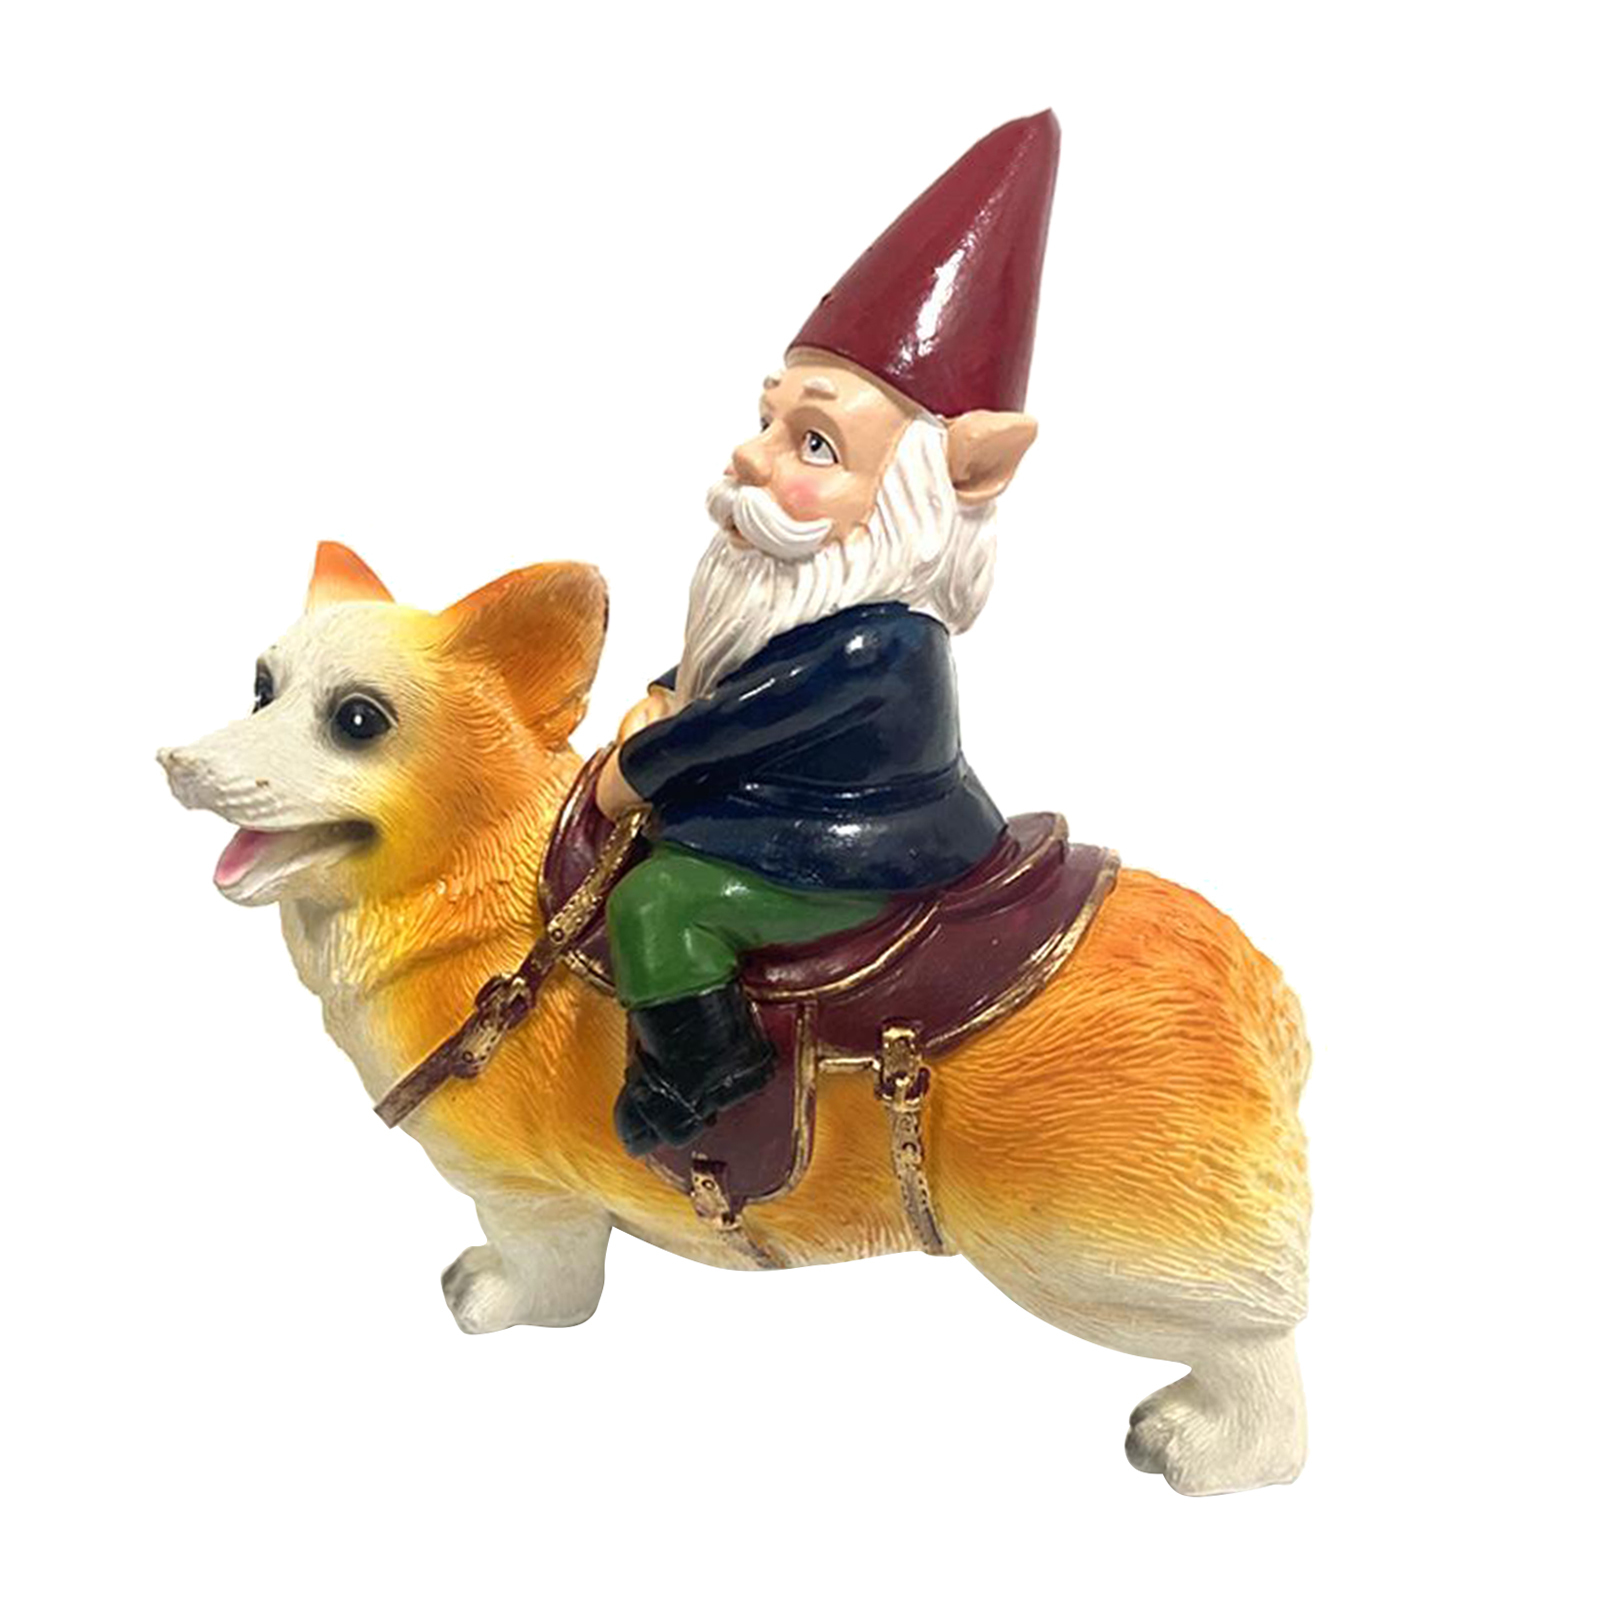 thumbnail 30 - Funny Resin Naughty Garden Gnome Statue Ornaments Villa Home Figurines